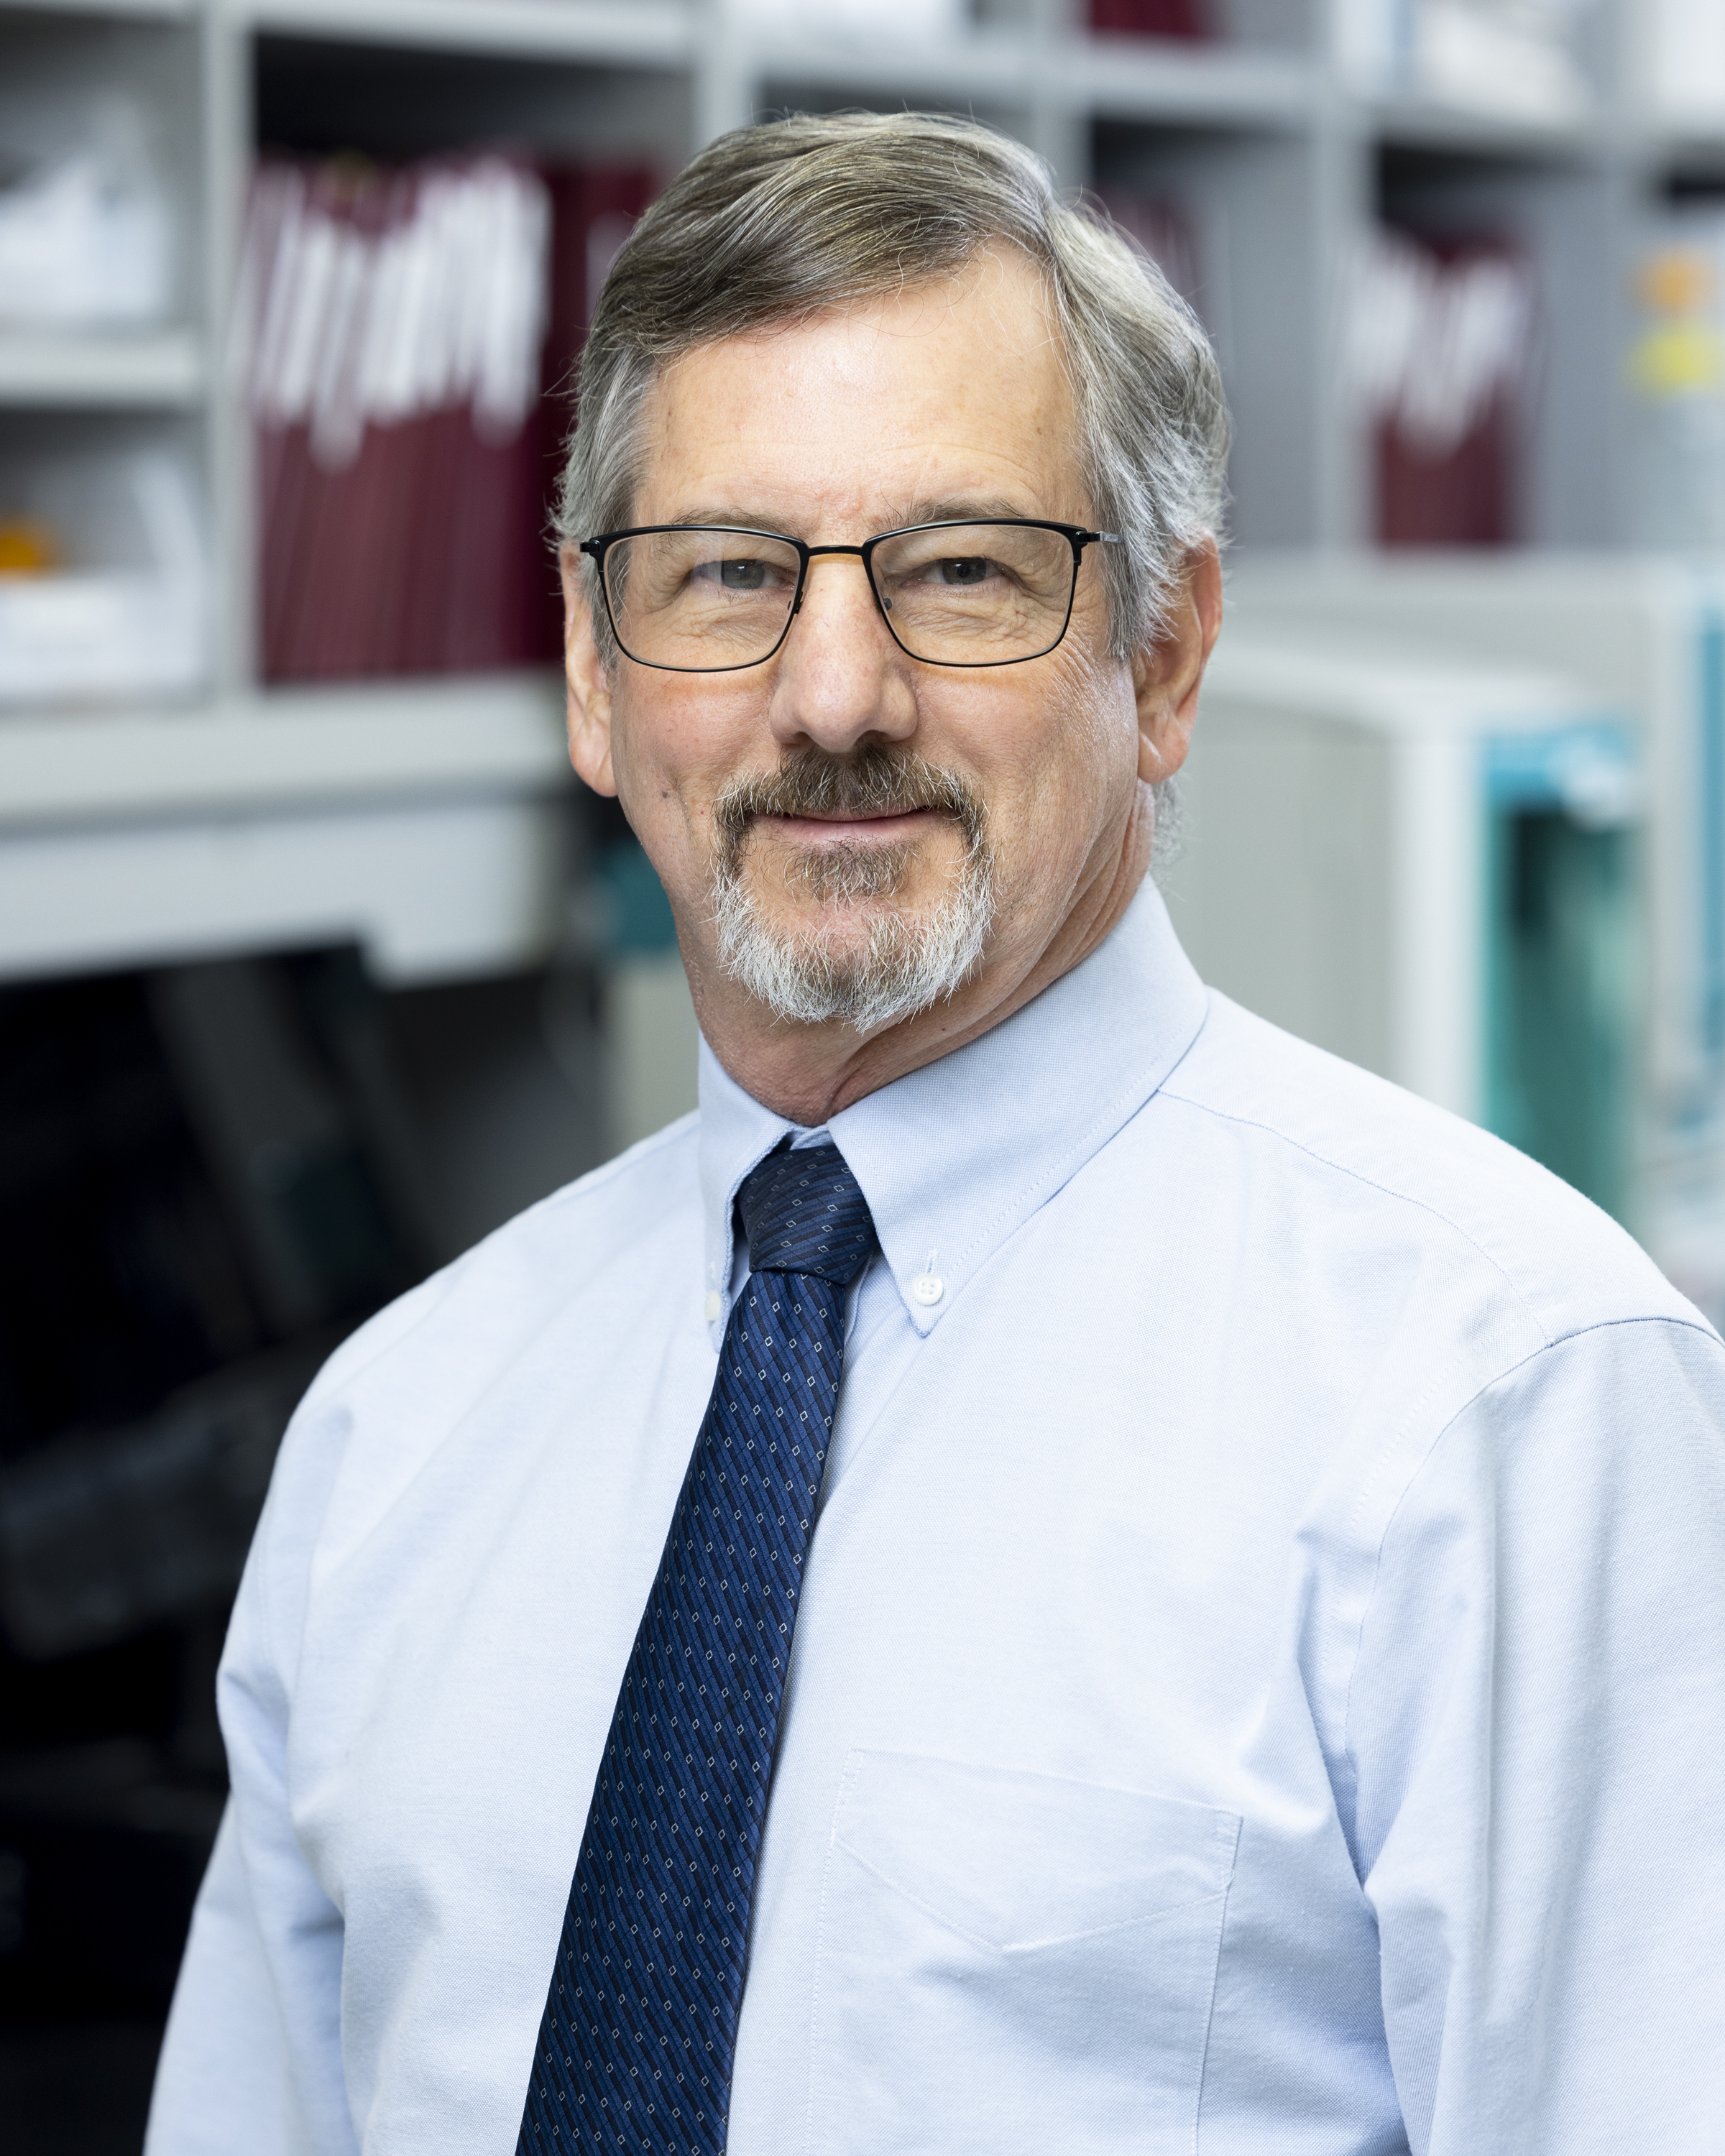 Dr. Brandt Cassidy, DNA Solutions Director of Laboratory Operation